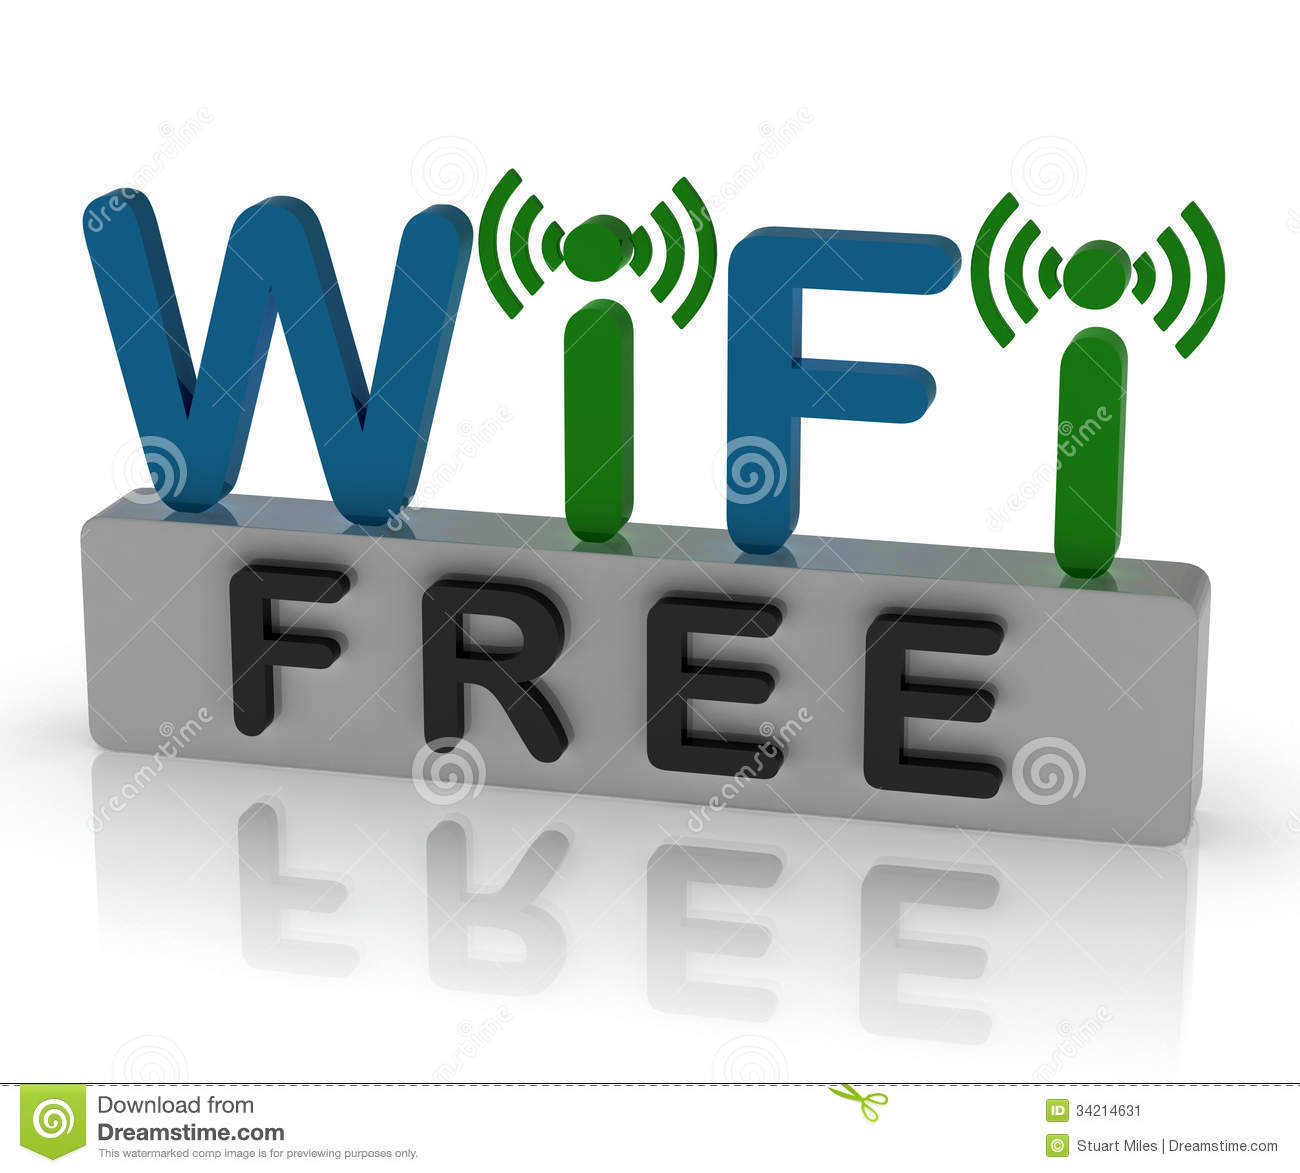 Wifi connection software free download for windows 7.